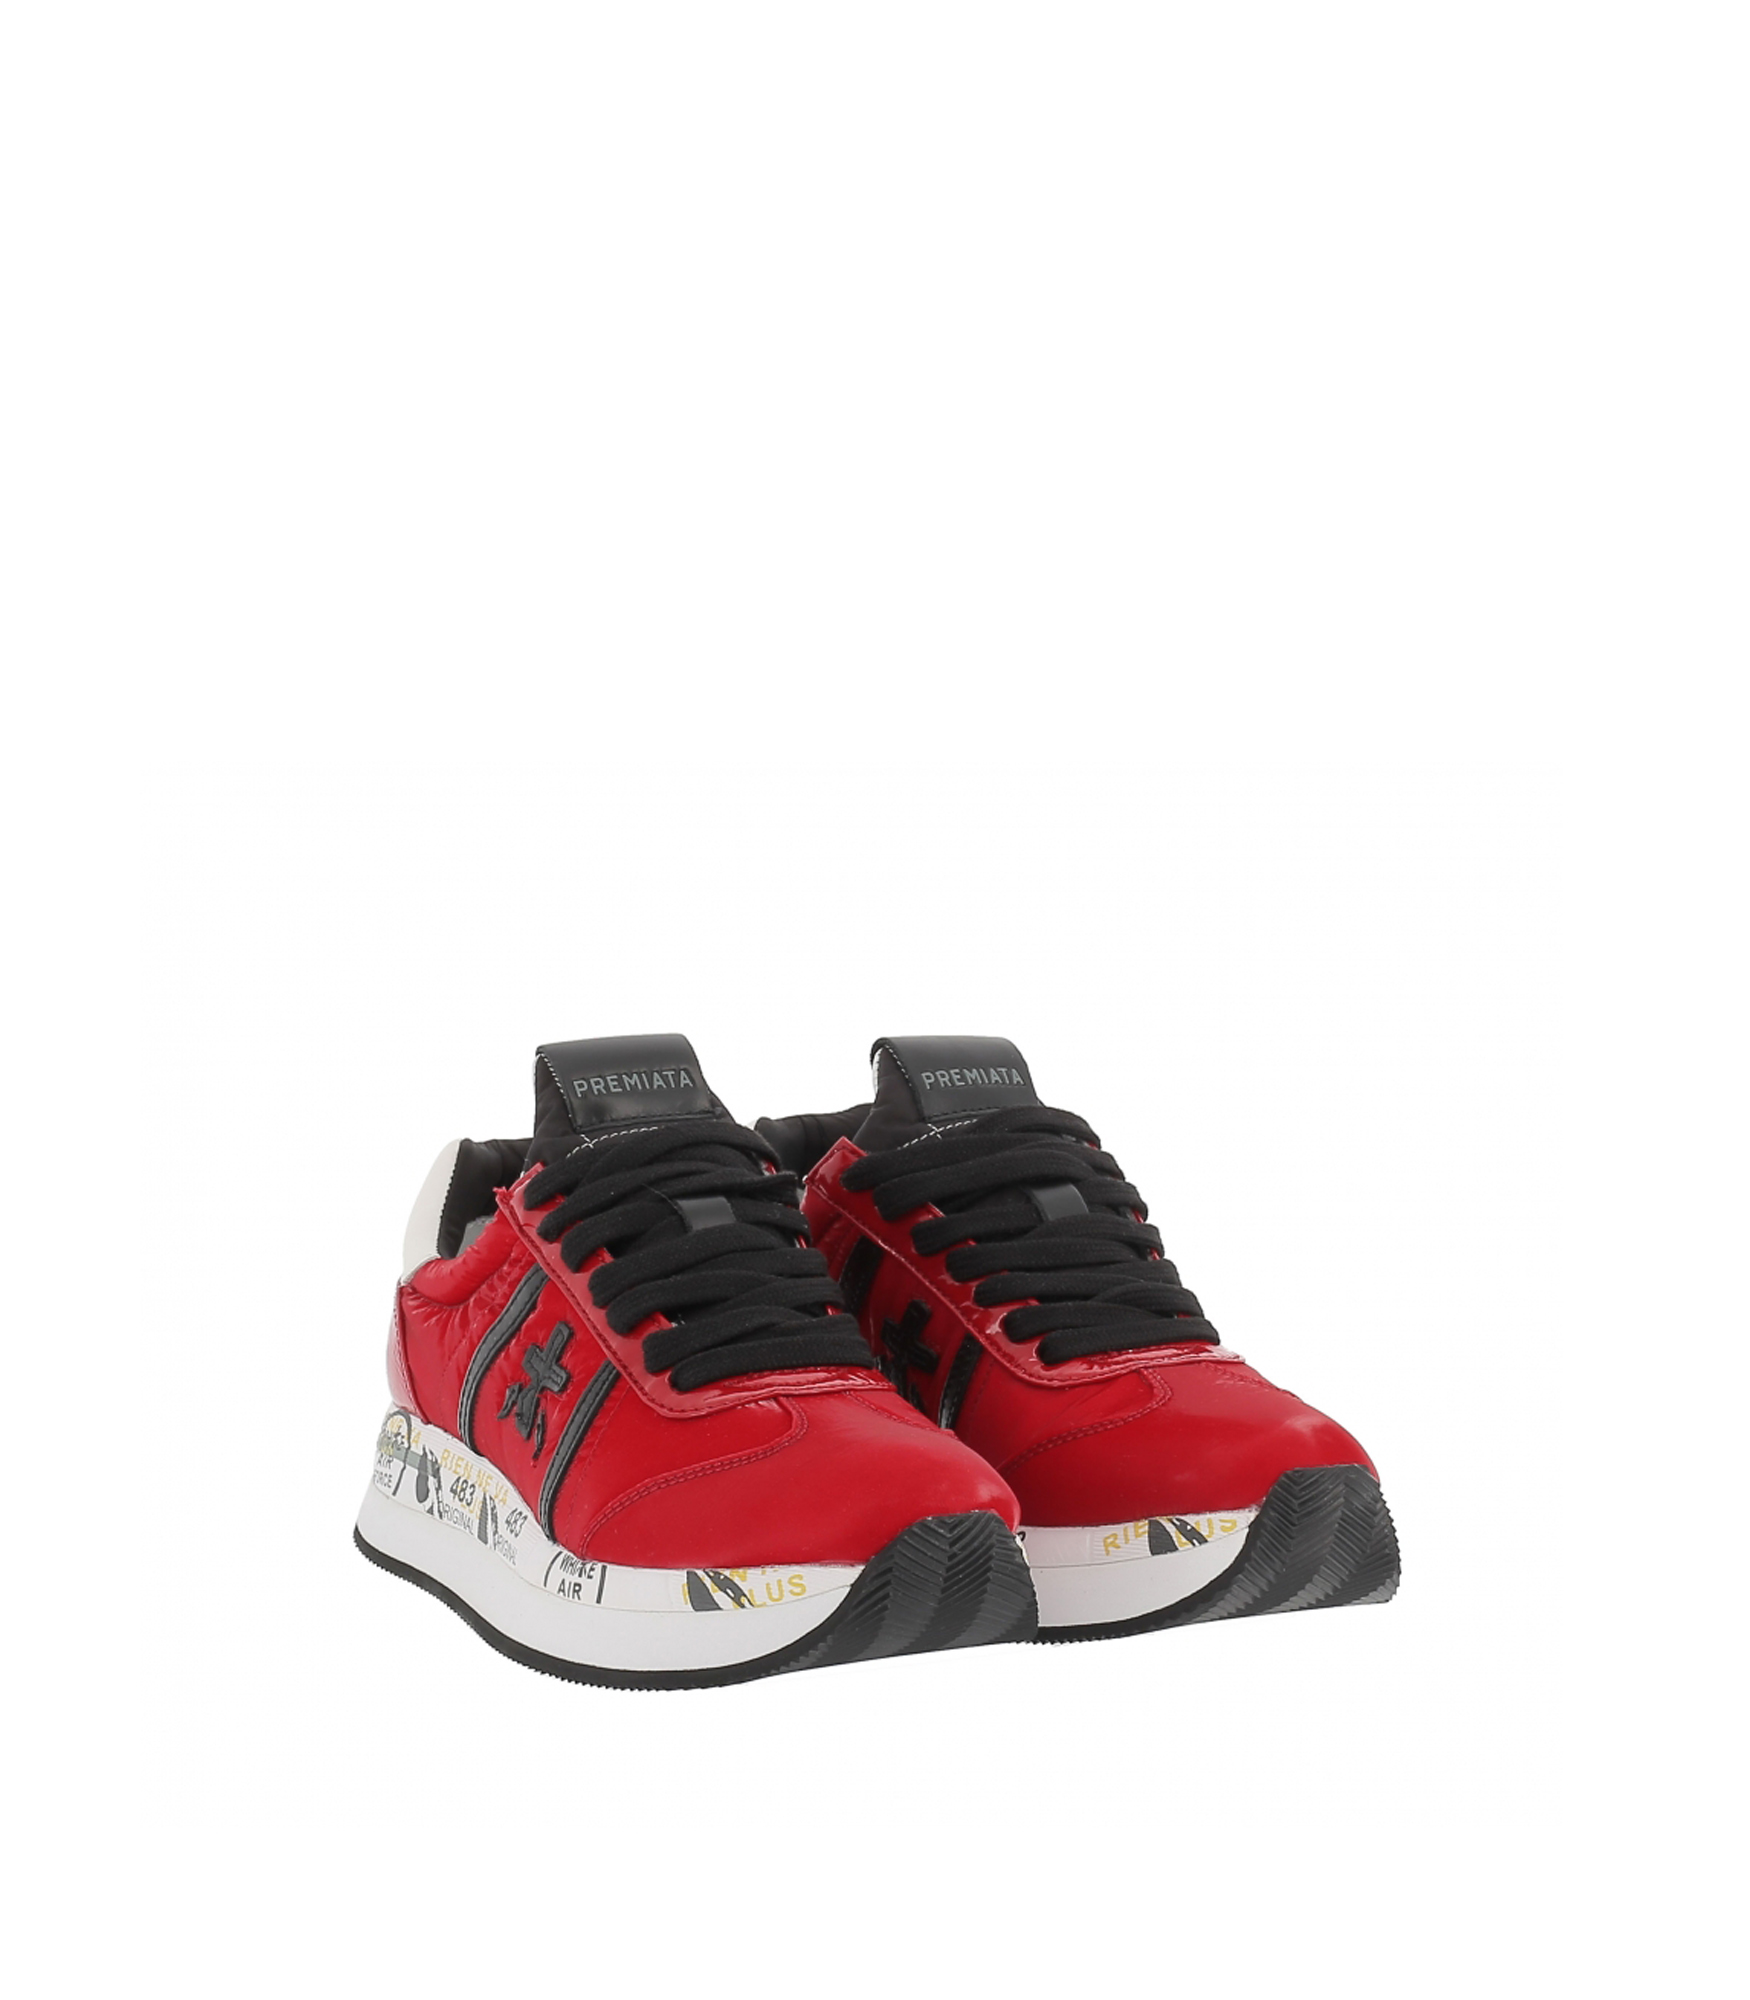 83-conny_4085-2-sneakers-premiata-conny-